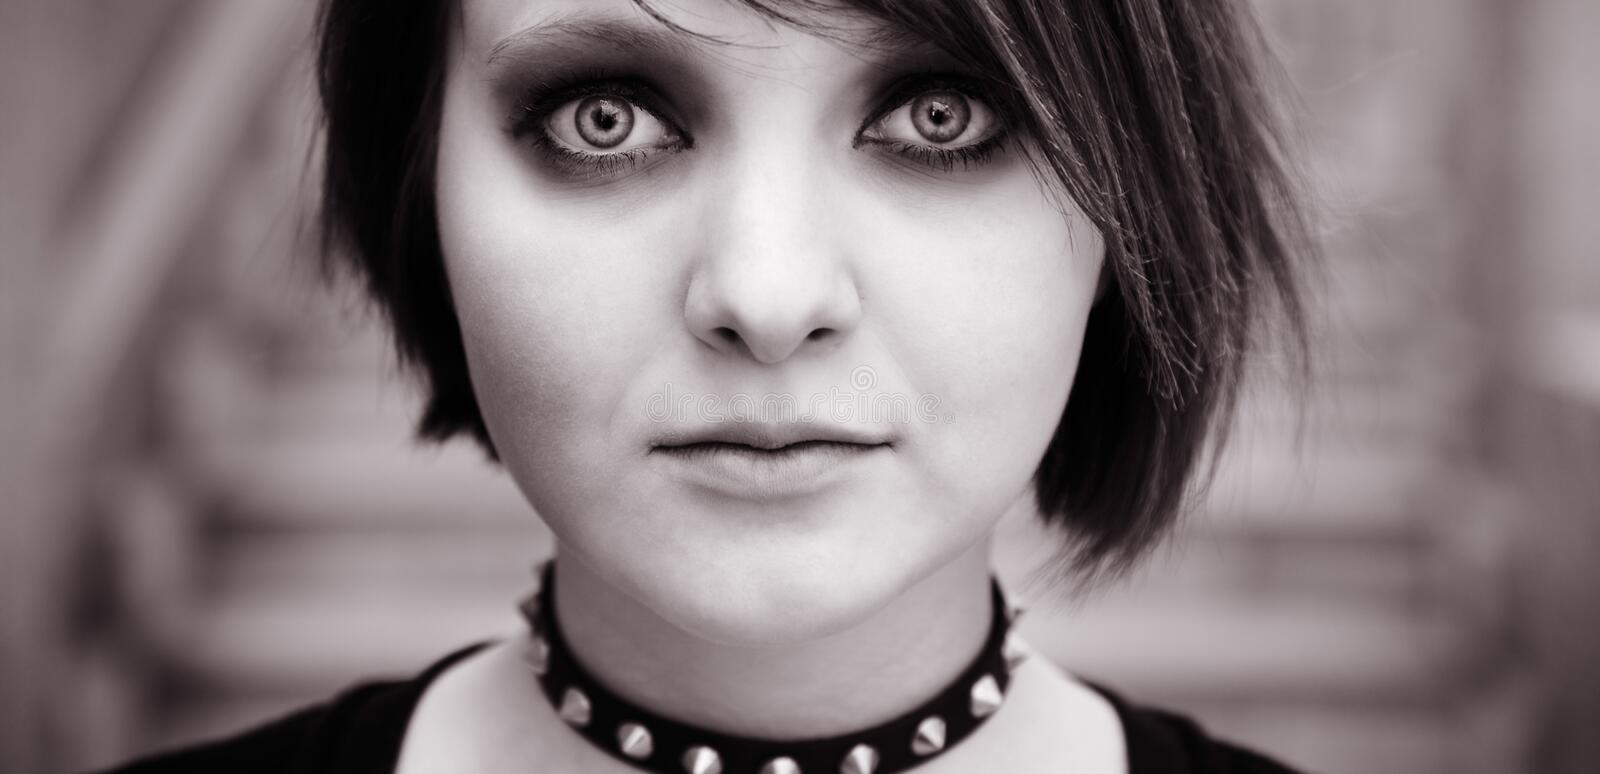 Emo of goth stock foto's